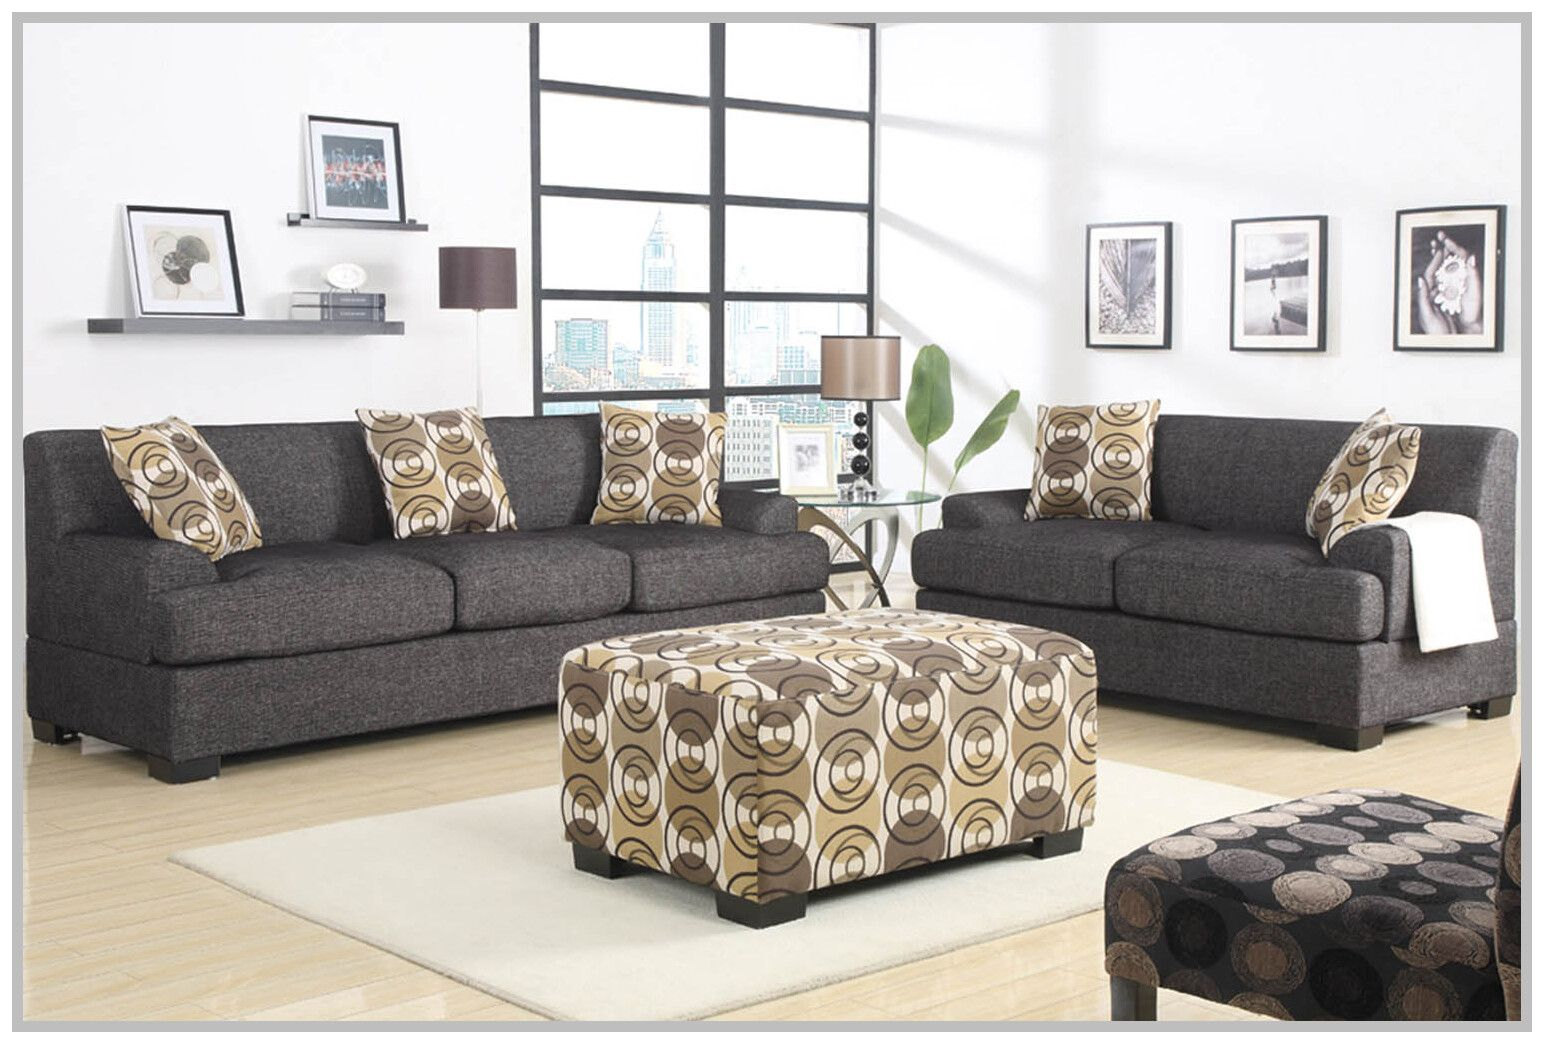 63 Reference Of Modern Grey Sofa Set In 2020 Living Room Sofa Set Sofa Set Grey Sofa Living Room